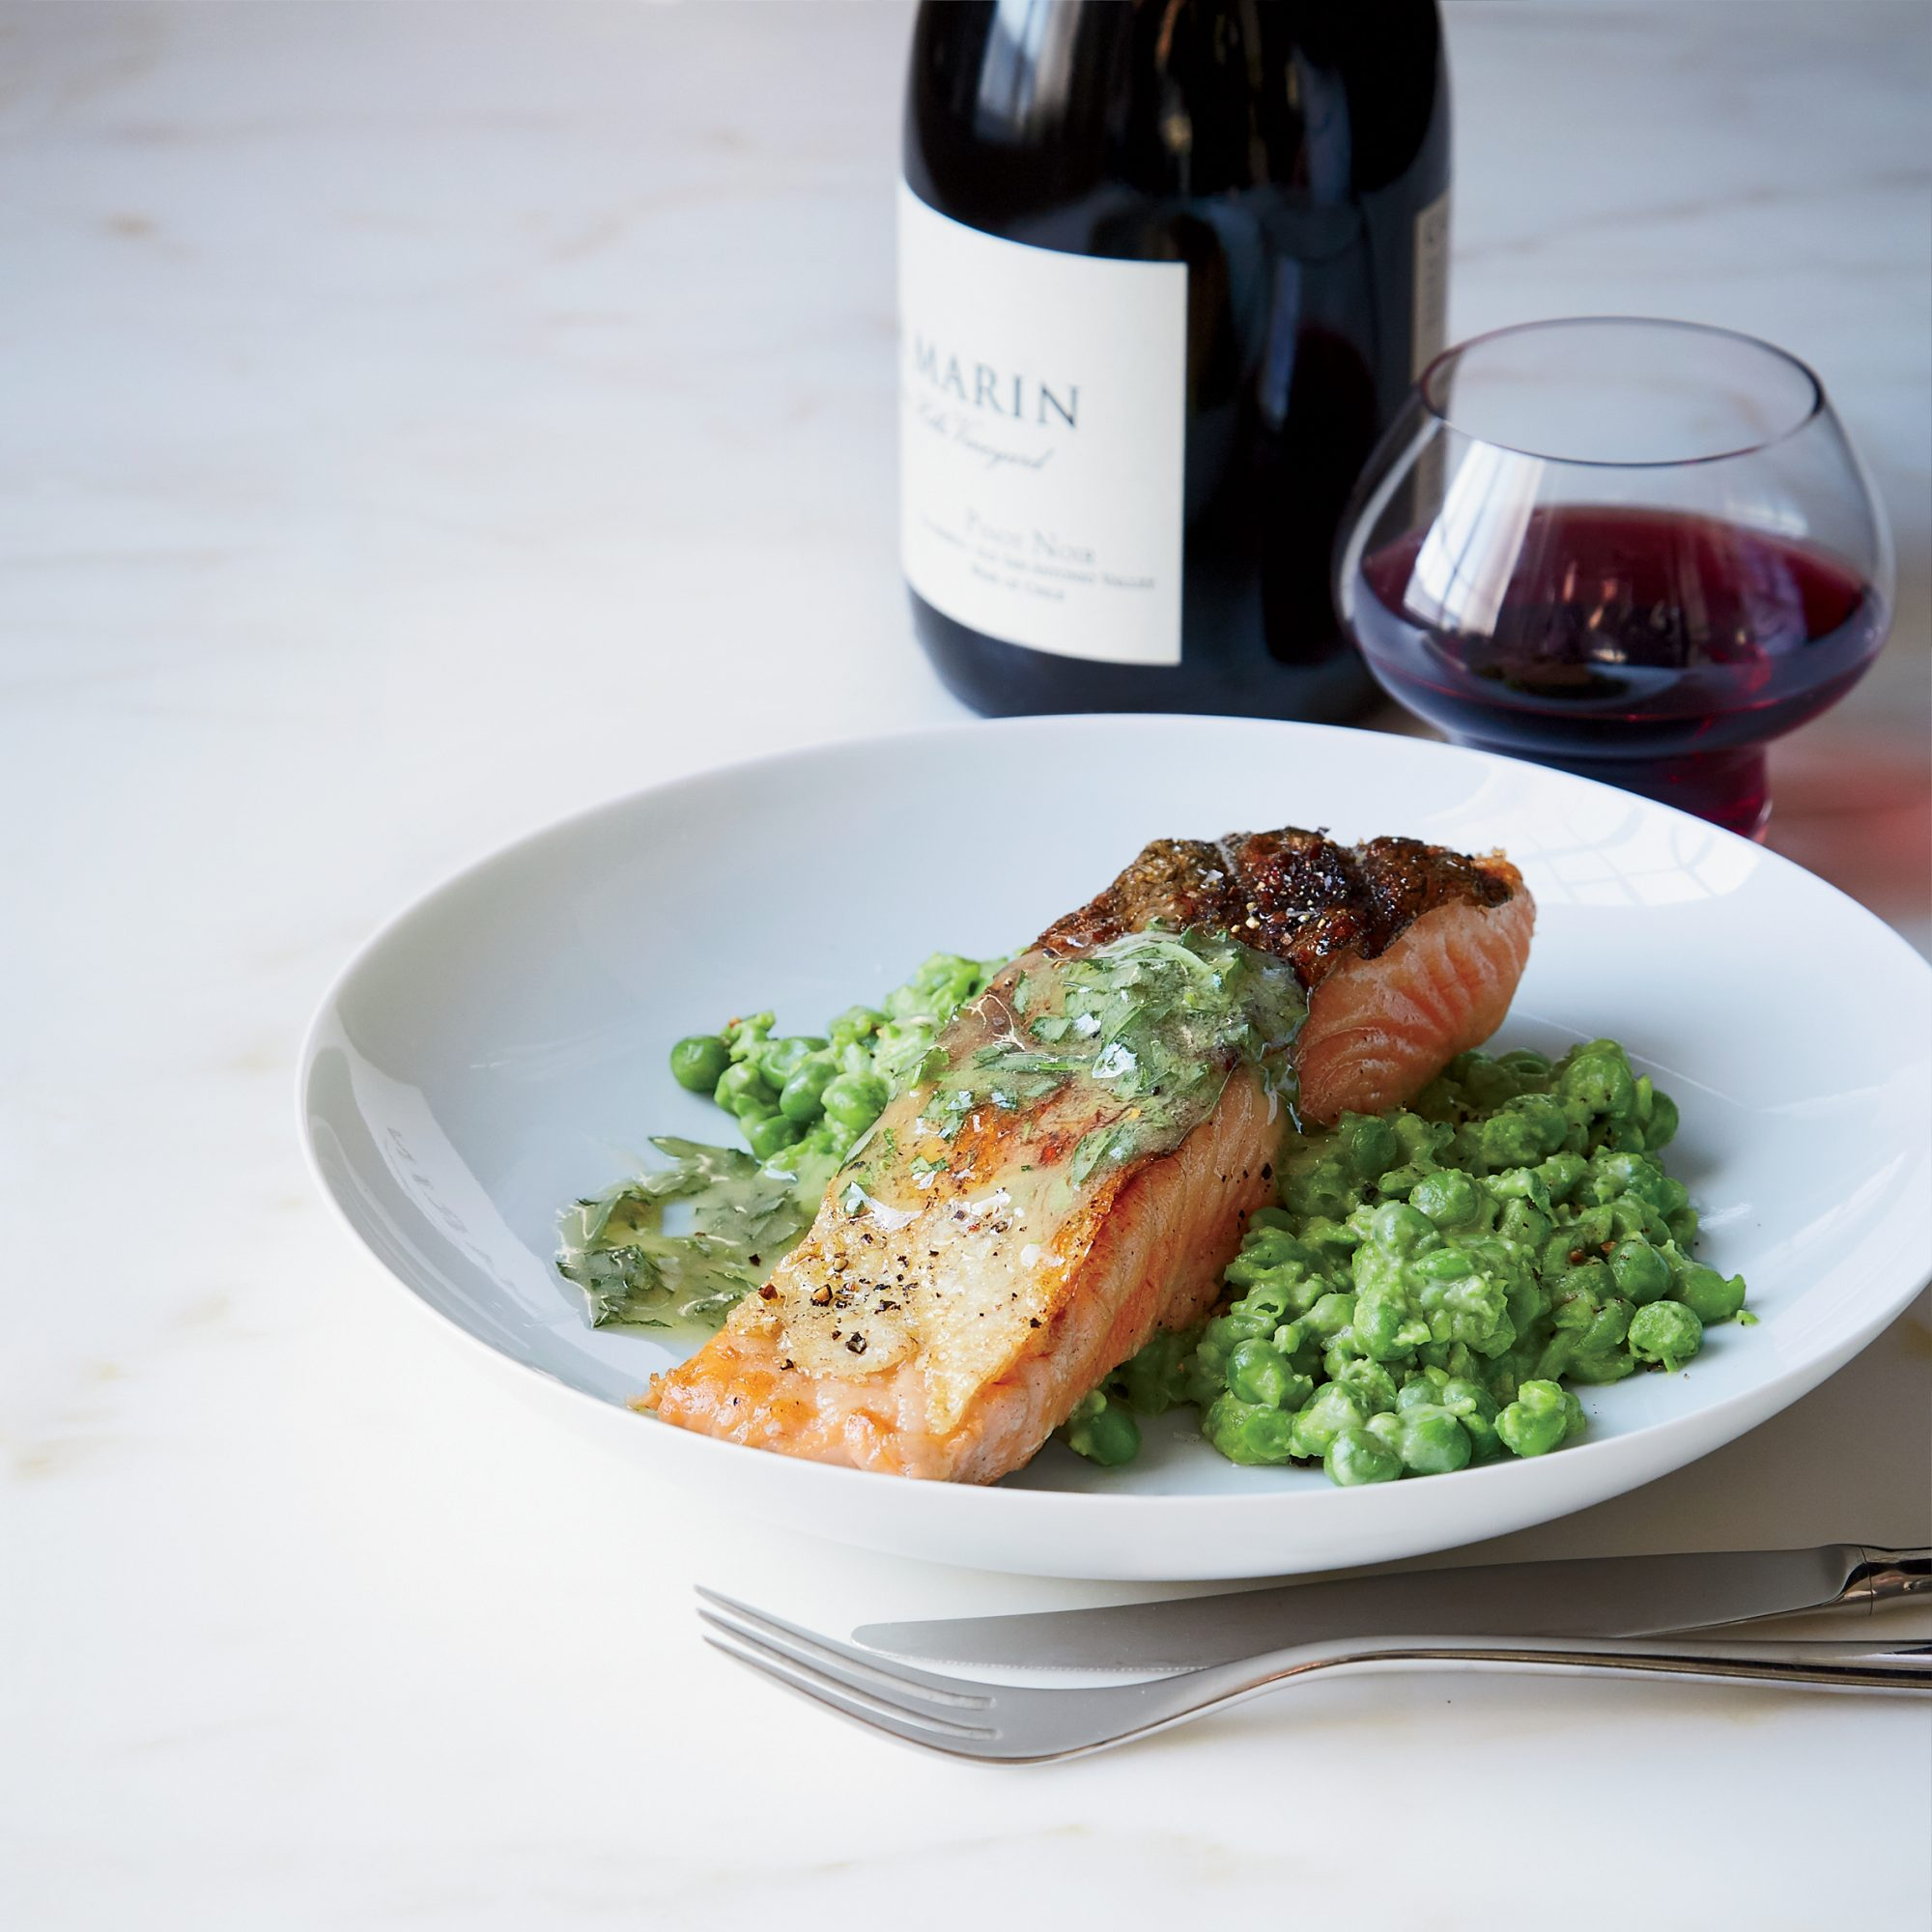 201404-r-salmon-with-mashed-peas-and-tarragon-butter.jpg